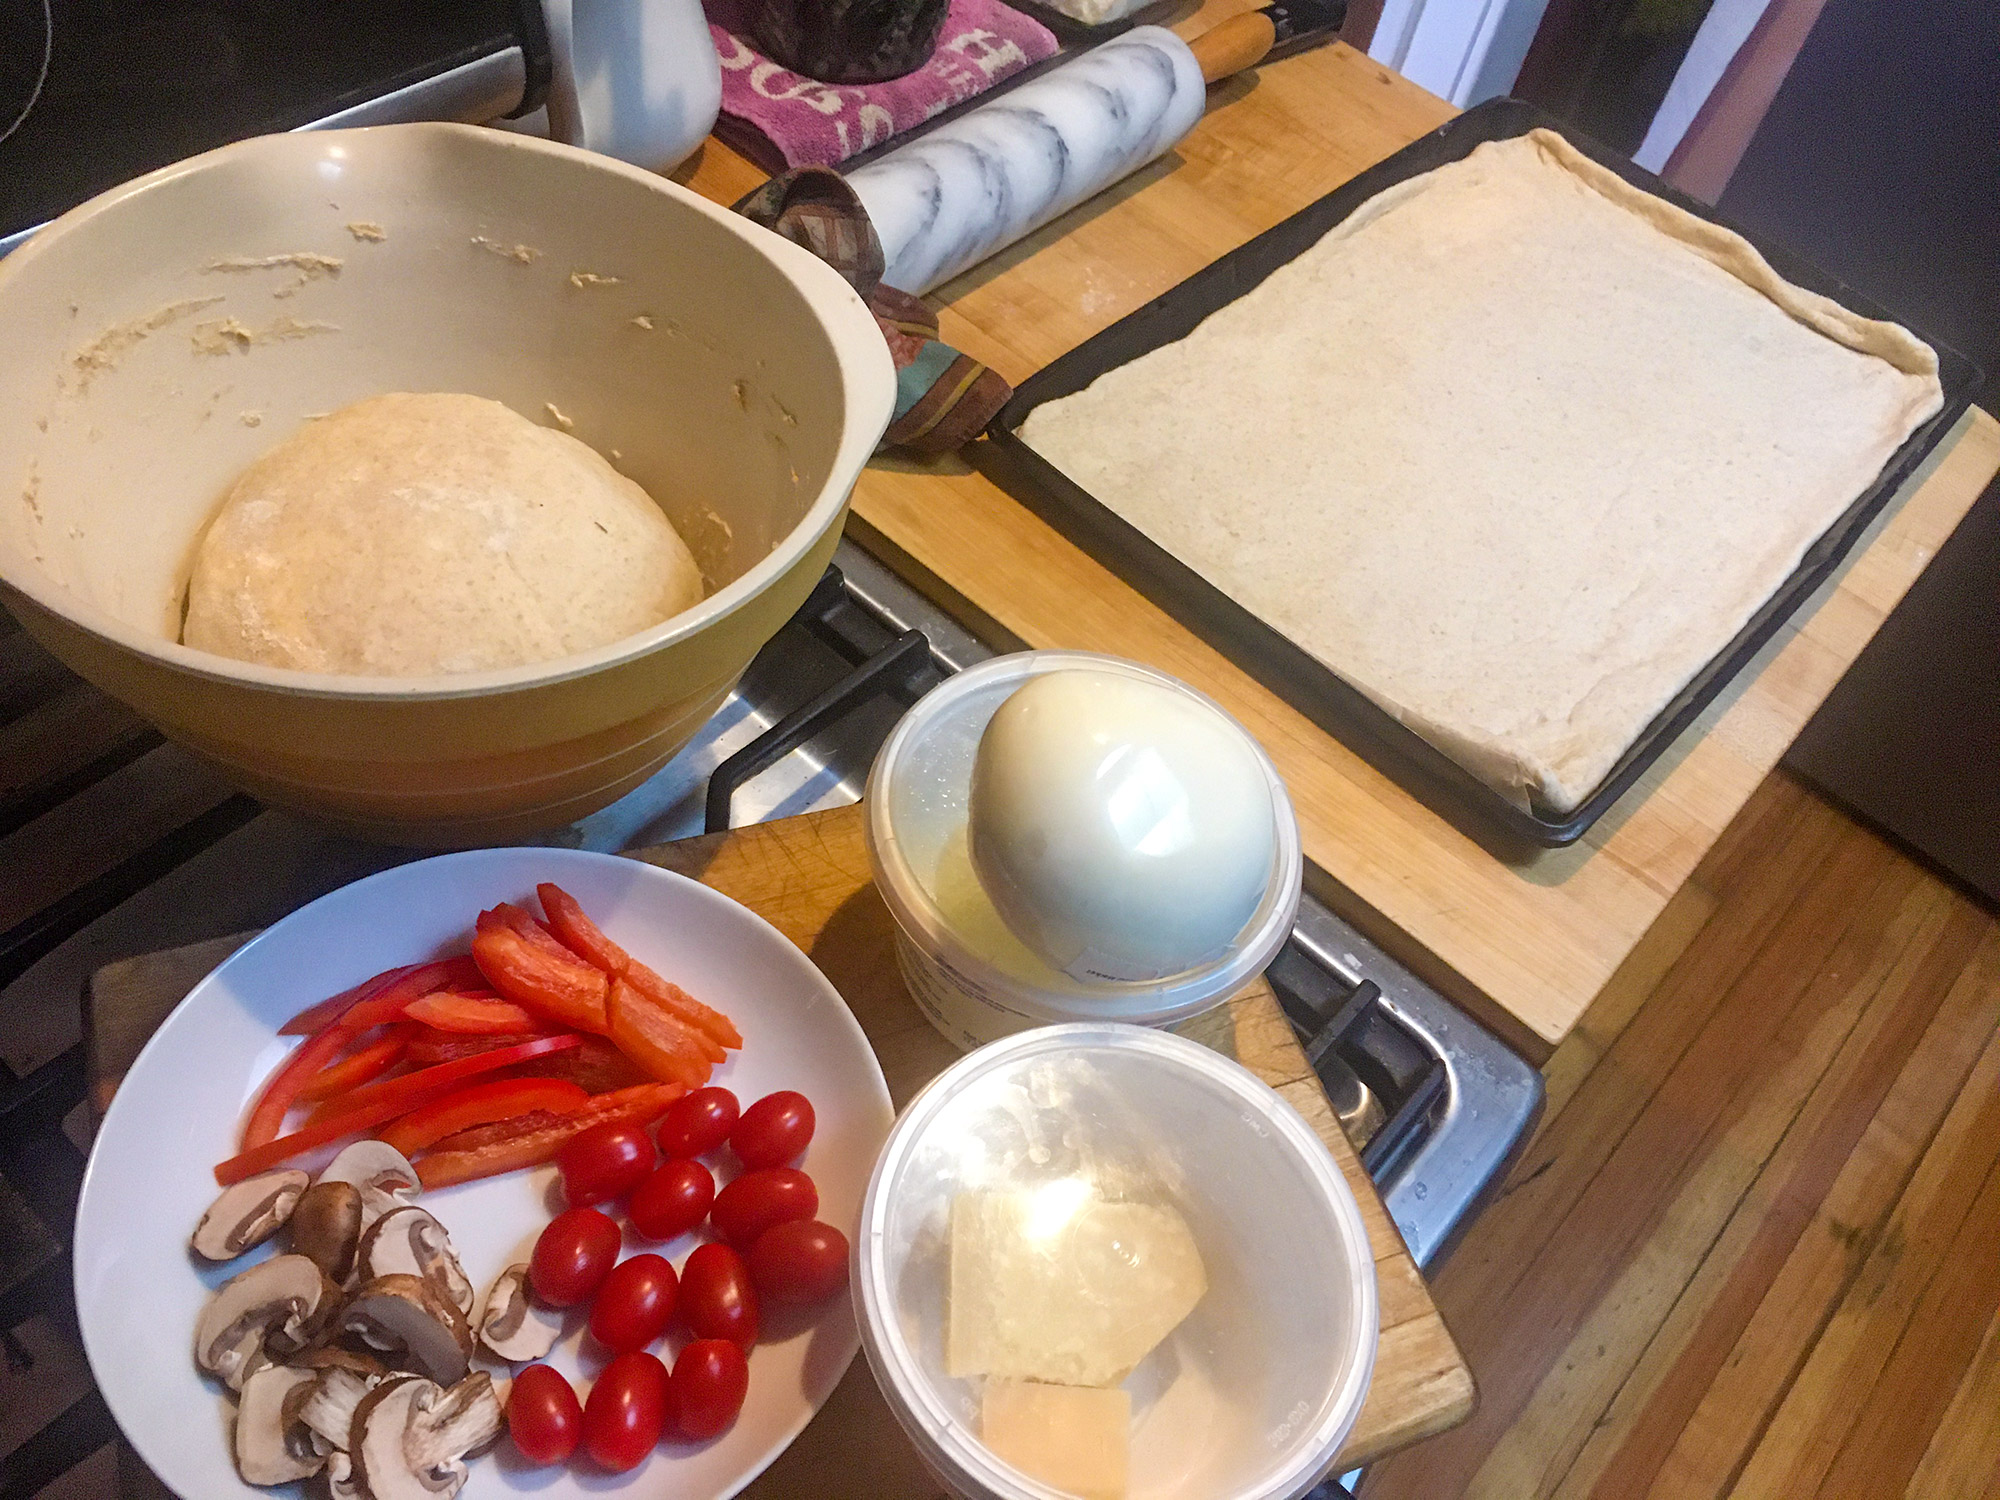 Pizza ingredients and remaining dough